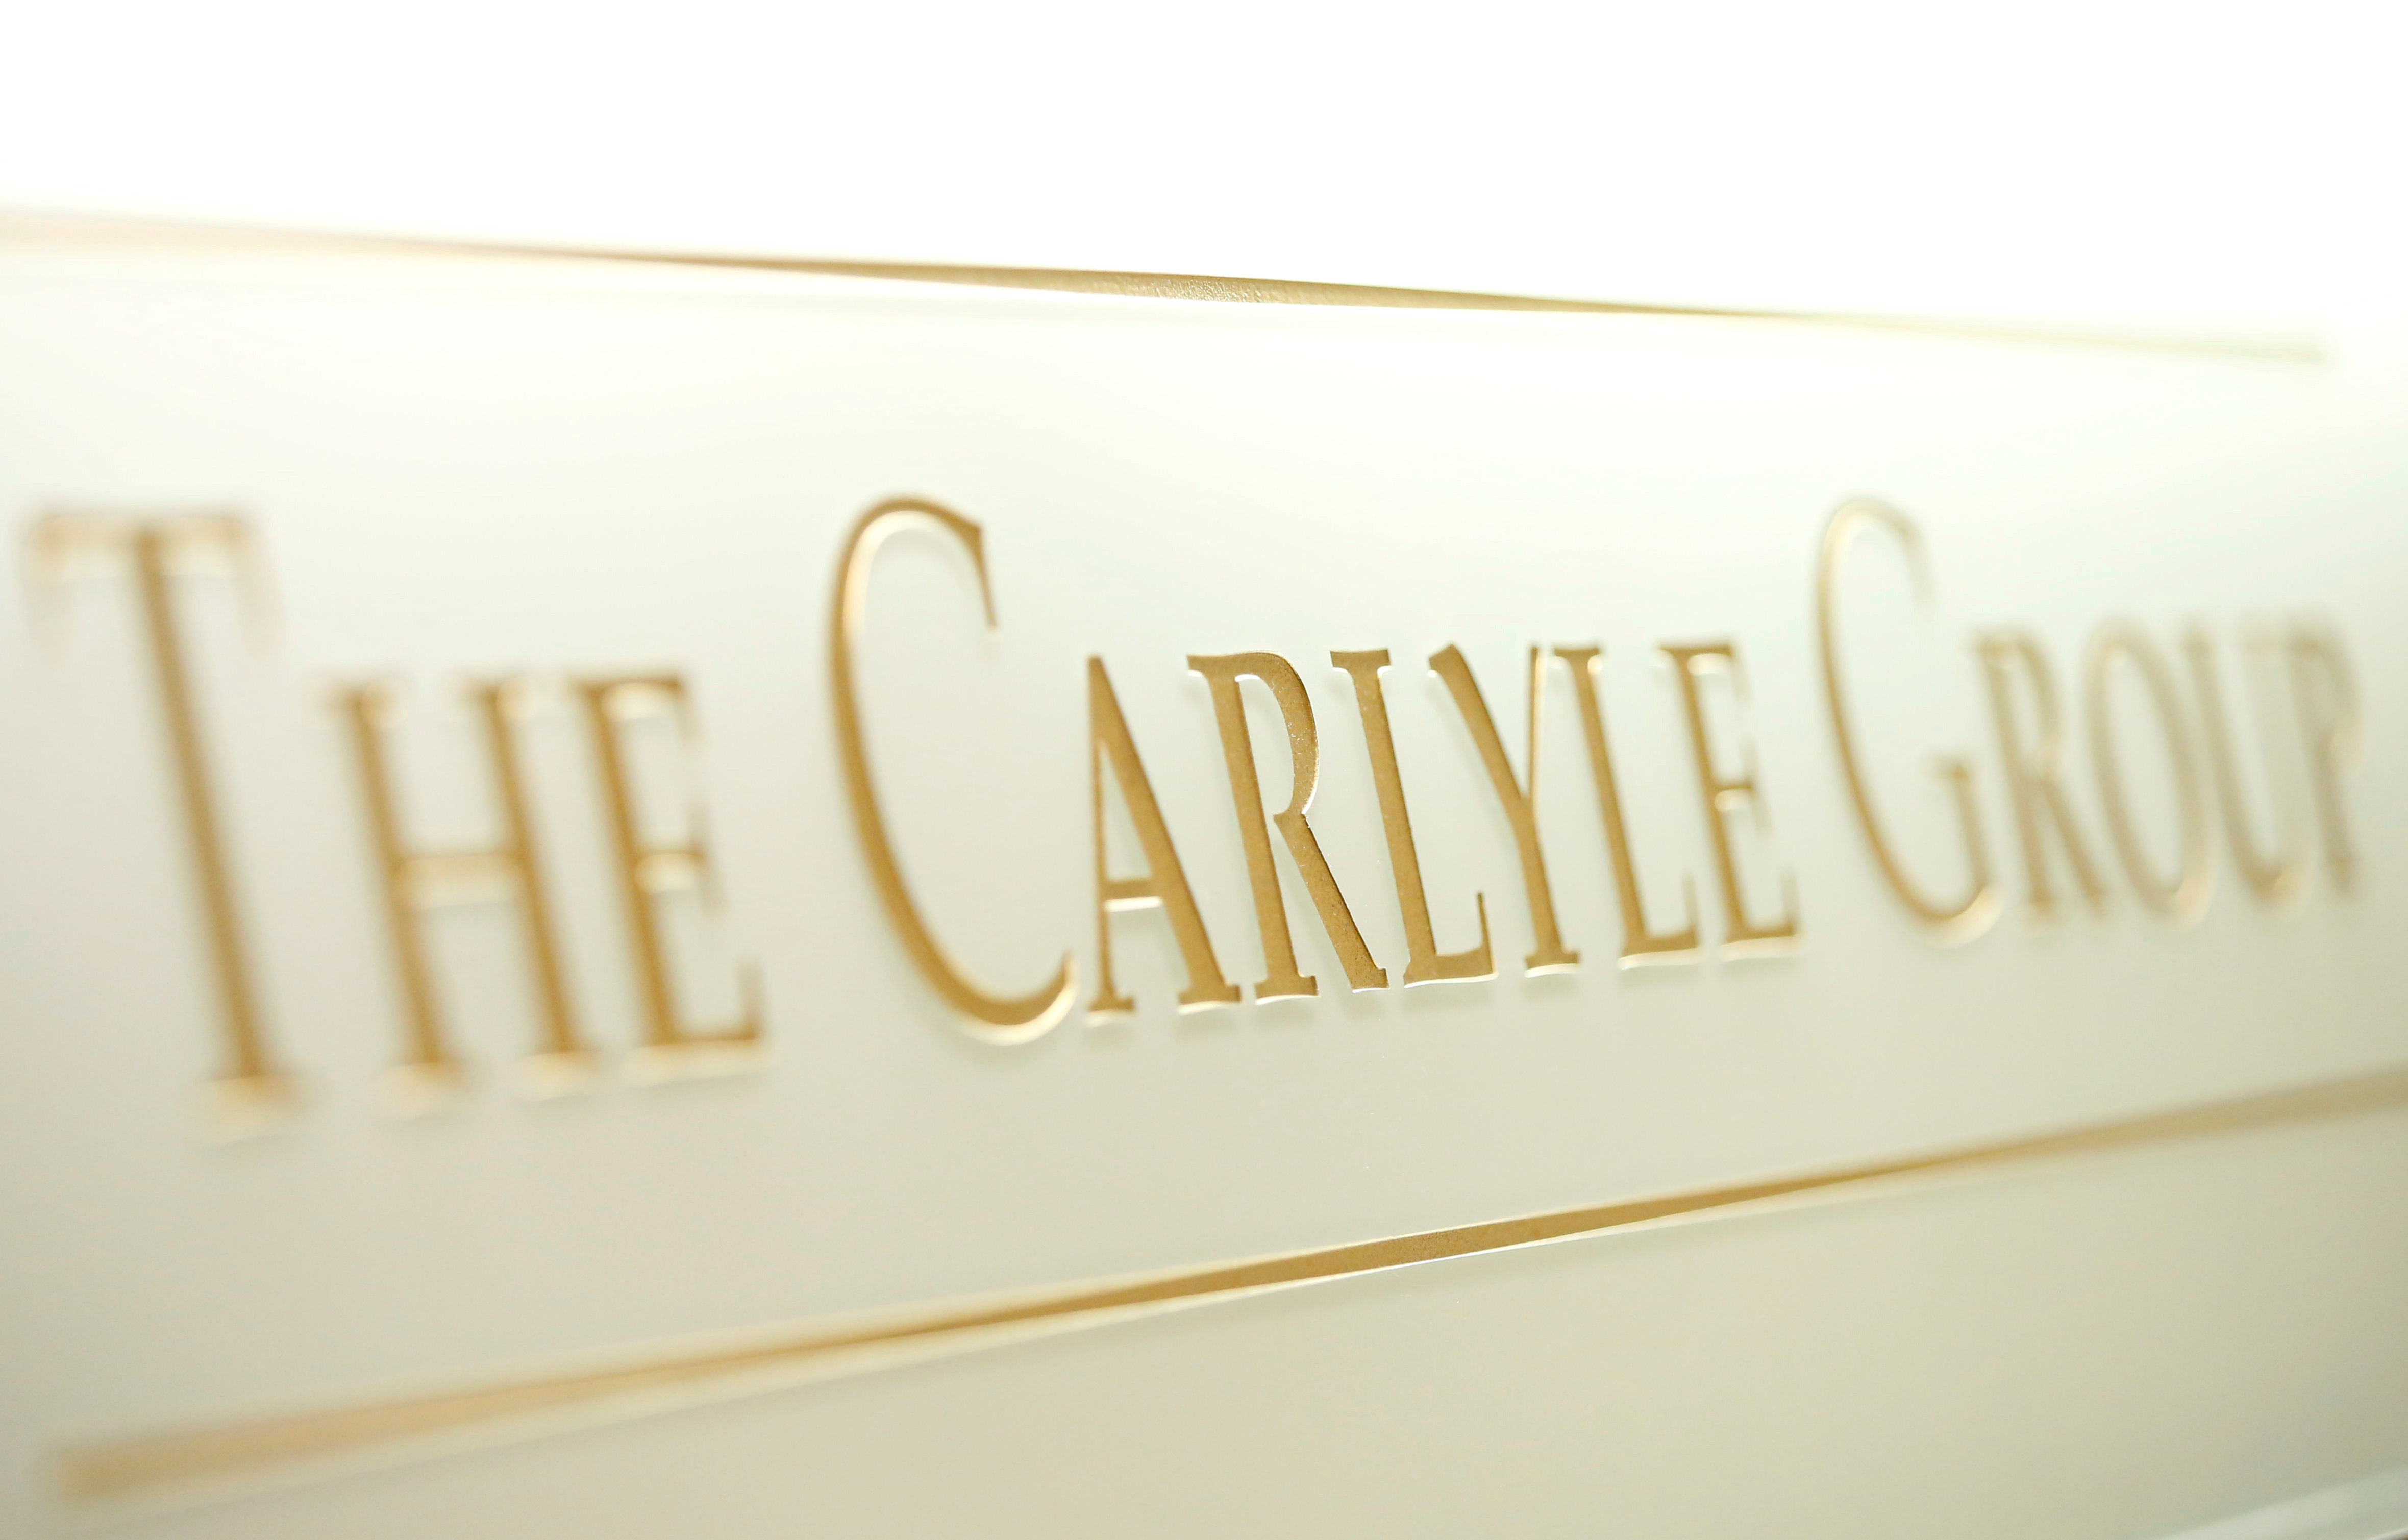 The logo of the Carlyle Group is displayed at the company's office in Tokyo, Japan October 17, 2018. REUTERS/Issei Kato